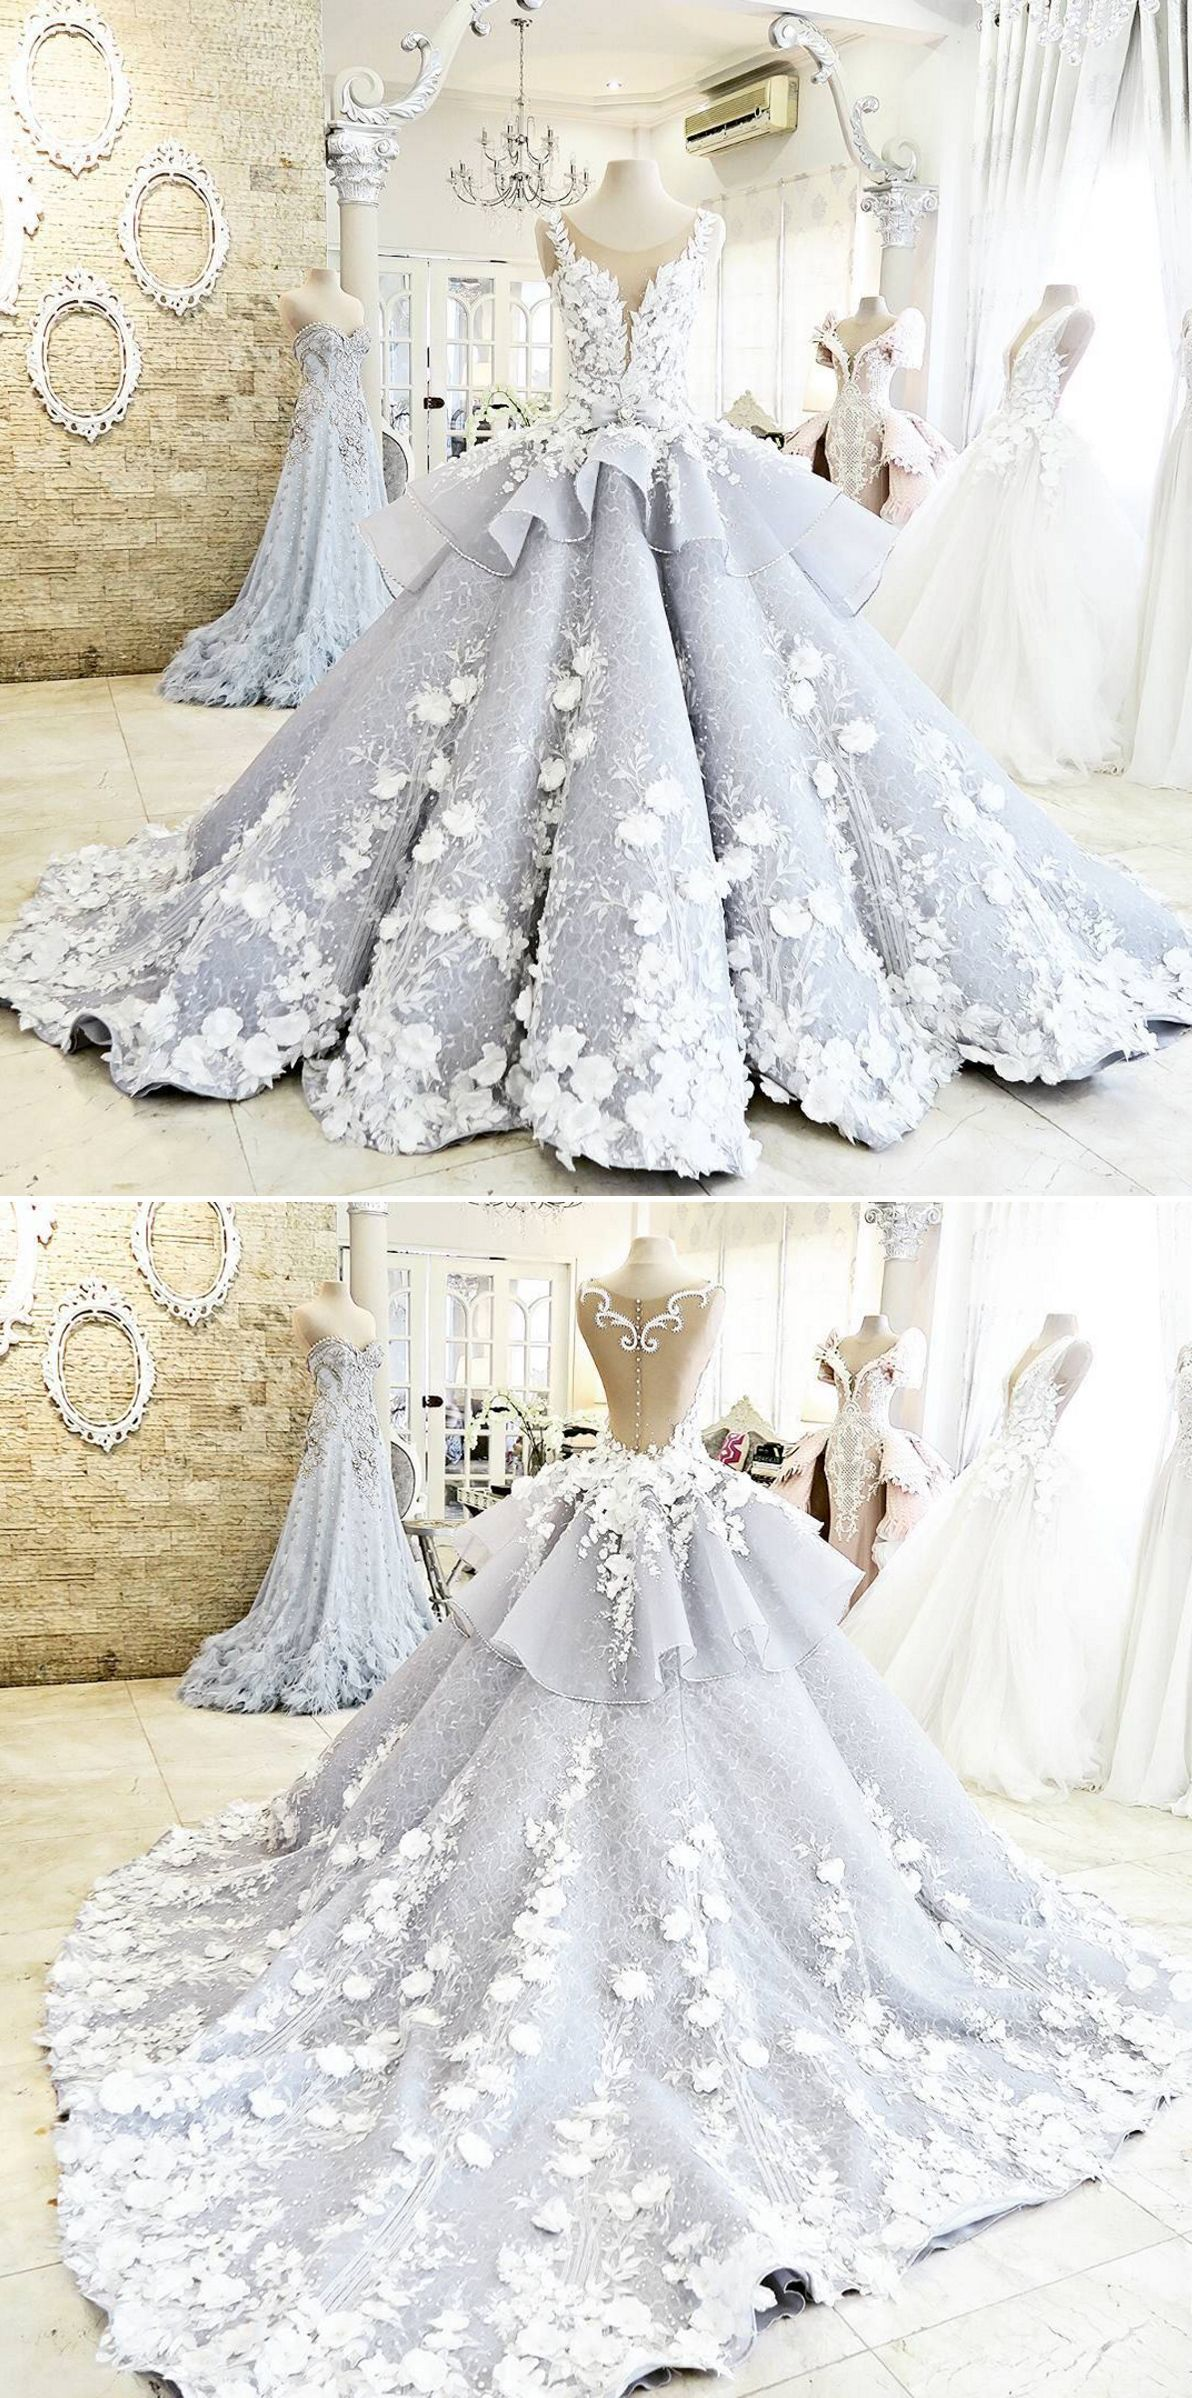 Blue Wedding Ball Gown With White Floral Applique And Pleated Skirt Pantone Color Of The Ball Gowns Quinceanera Dresses Blue Light Blue Quinceanera Dresses